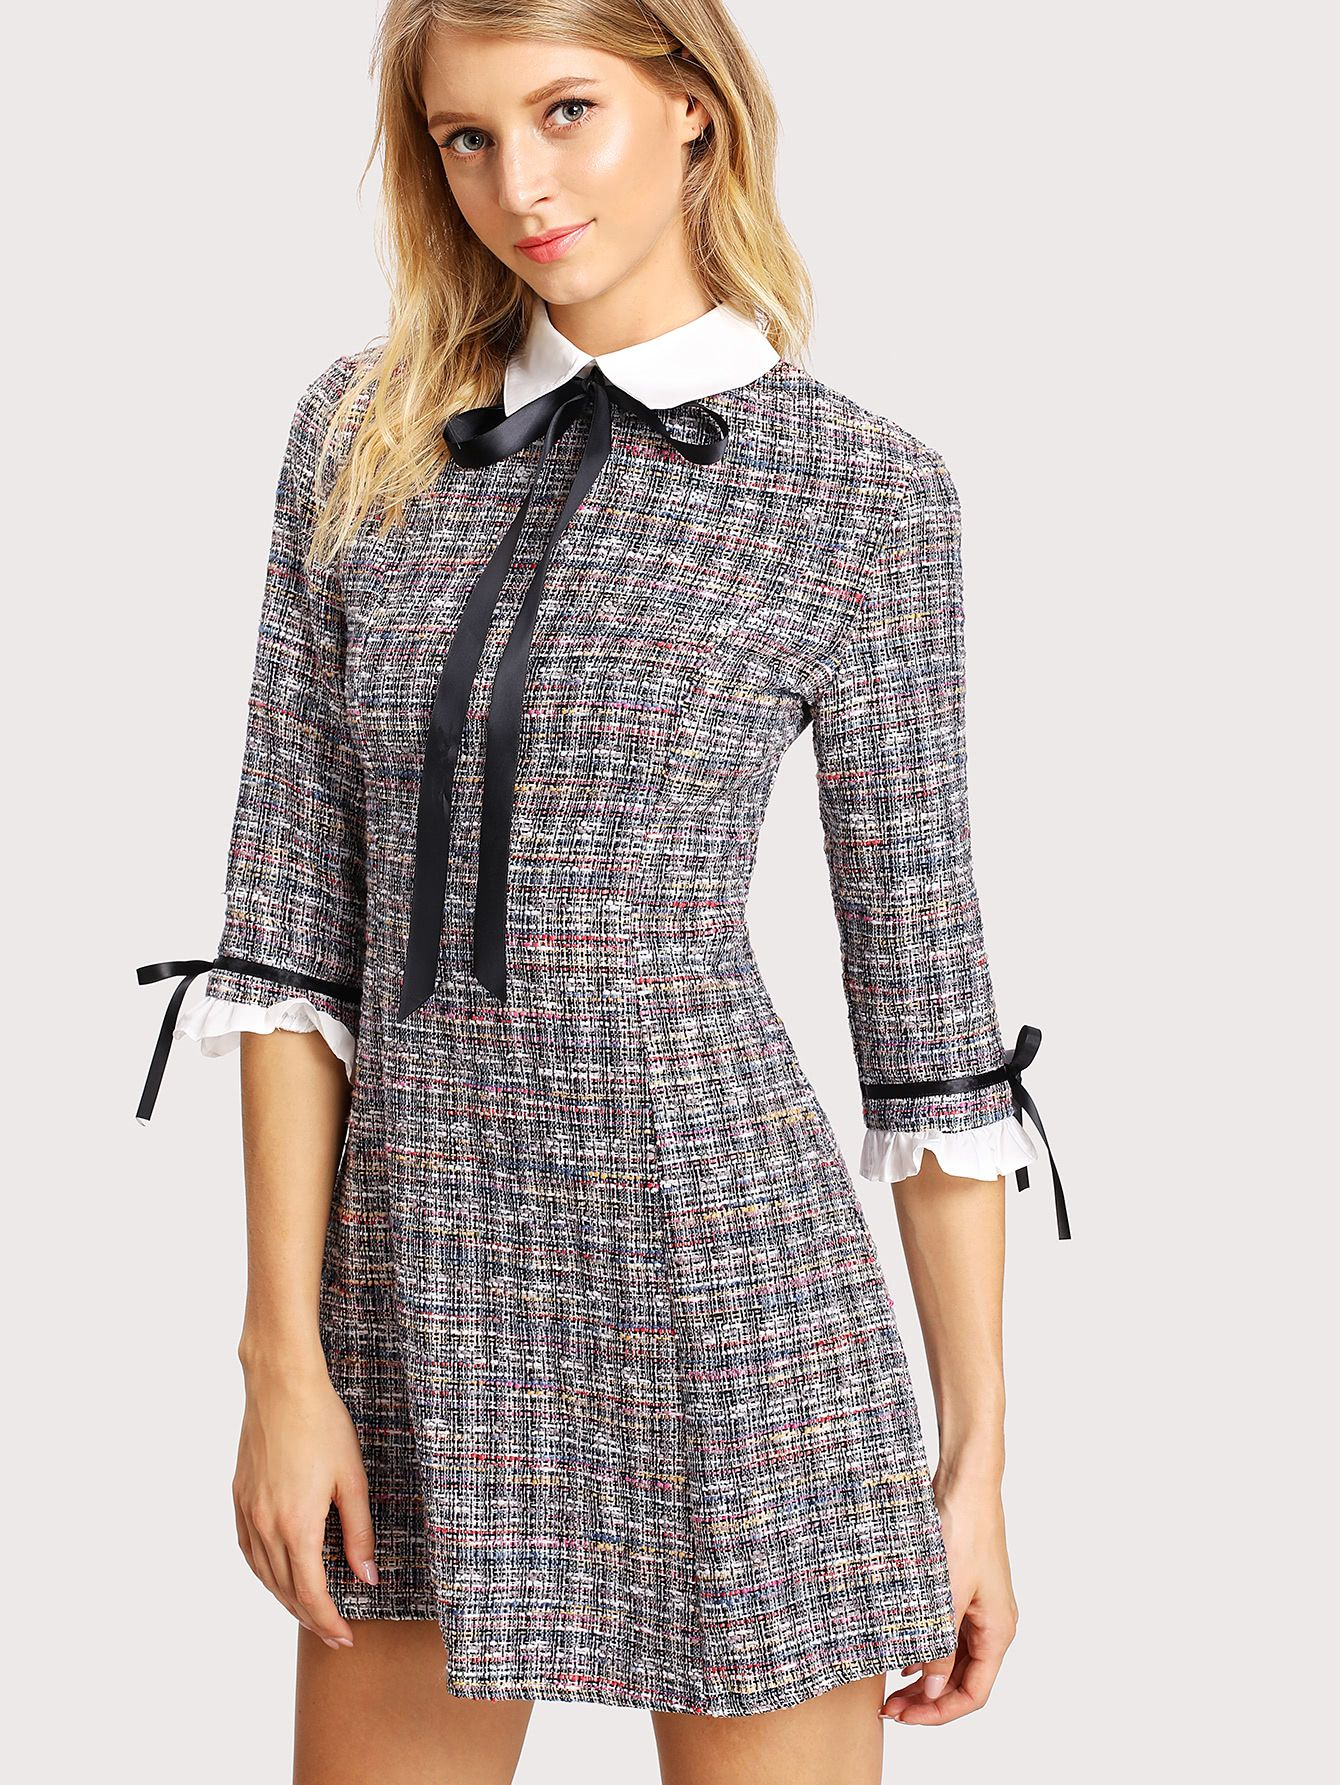 f1dd62efcf Shop Contrast Collar And Cuff Tweed Dress online. SheIn offers Contrast  Collar And Cuff Tweed Dress & more to fit your fashionable needs.